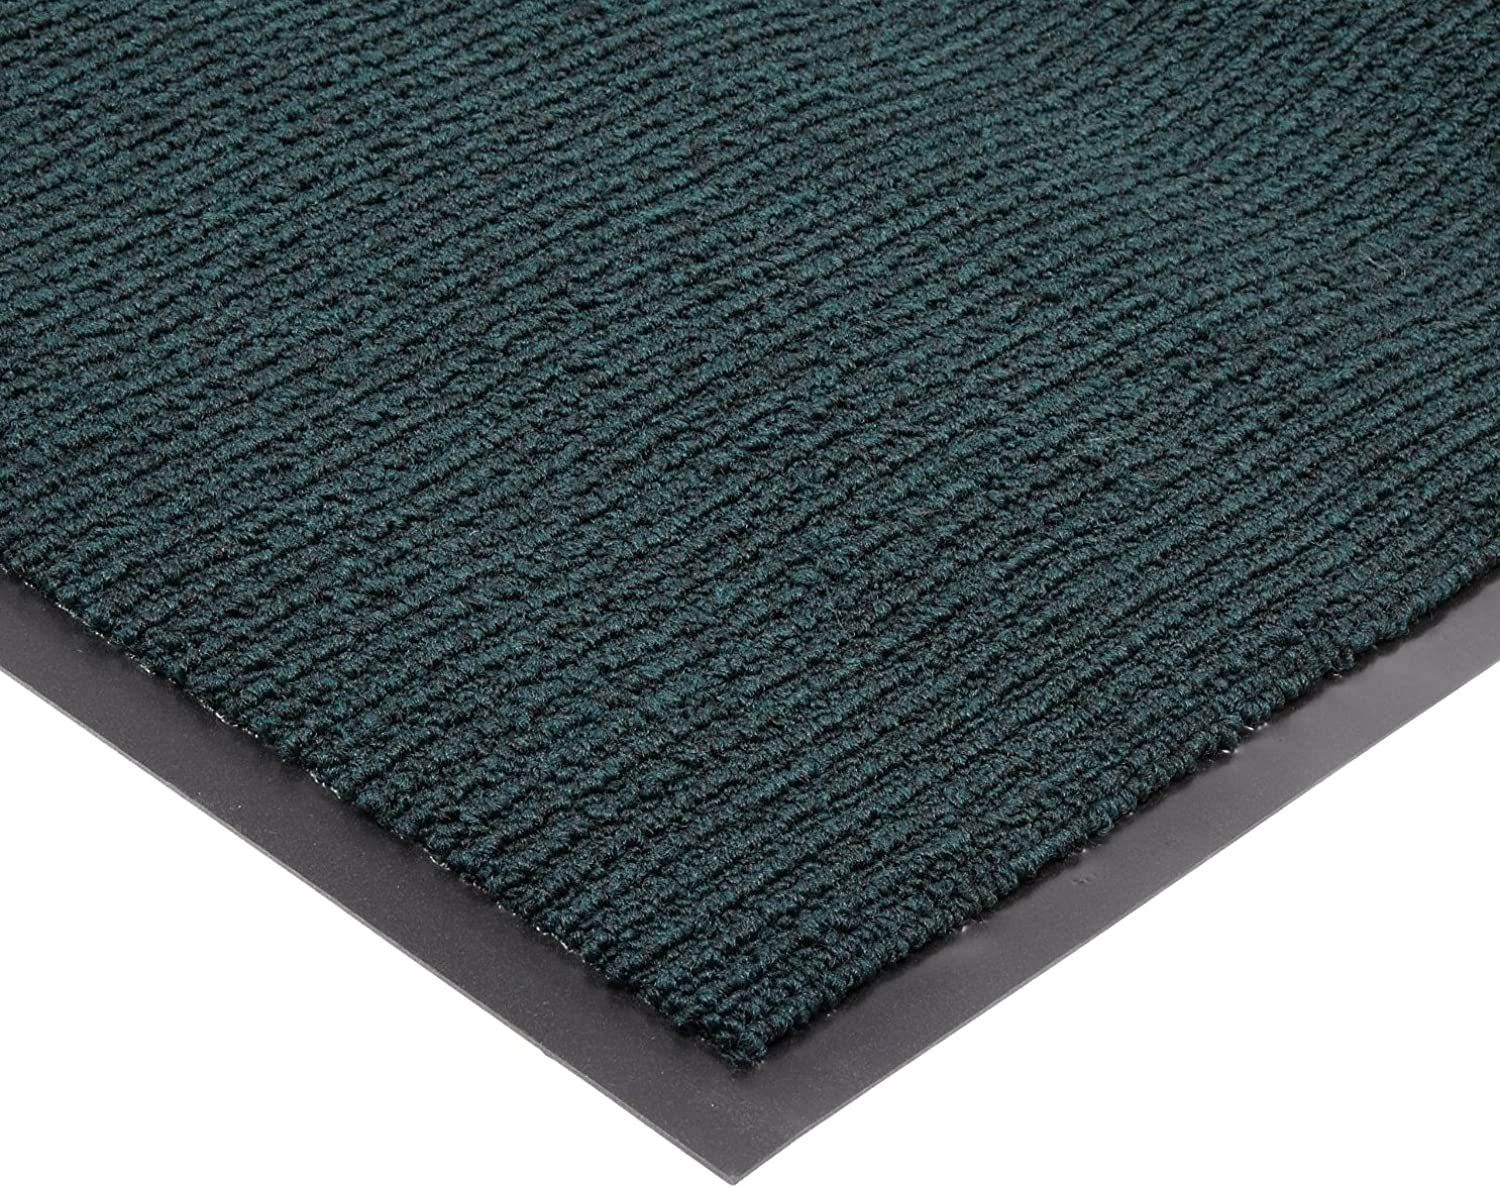 Notrax 132 Estes Entrance Mat, for Main Entranceways and Heavy Traffic Areas, 4' Width x 6' Length x 3 8  Thickness, Hunter Green